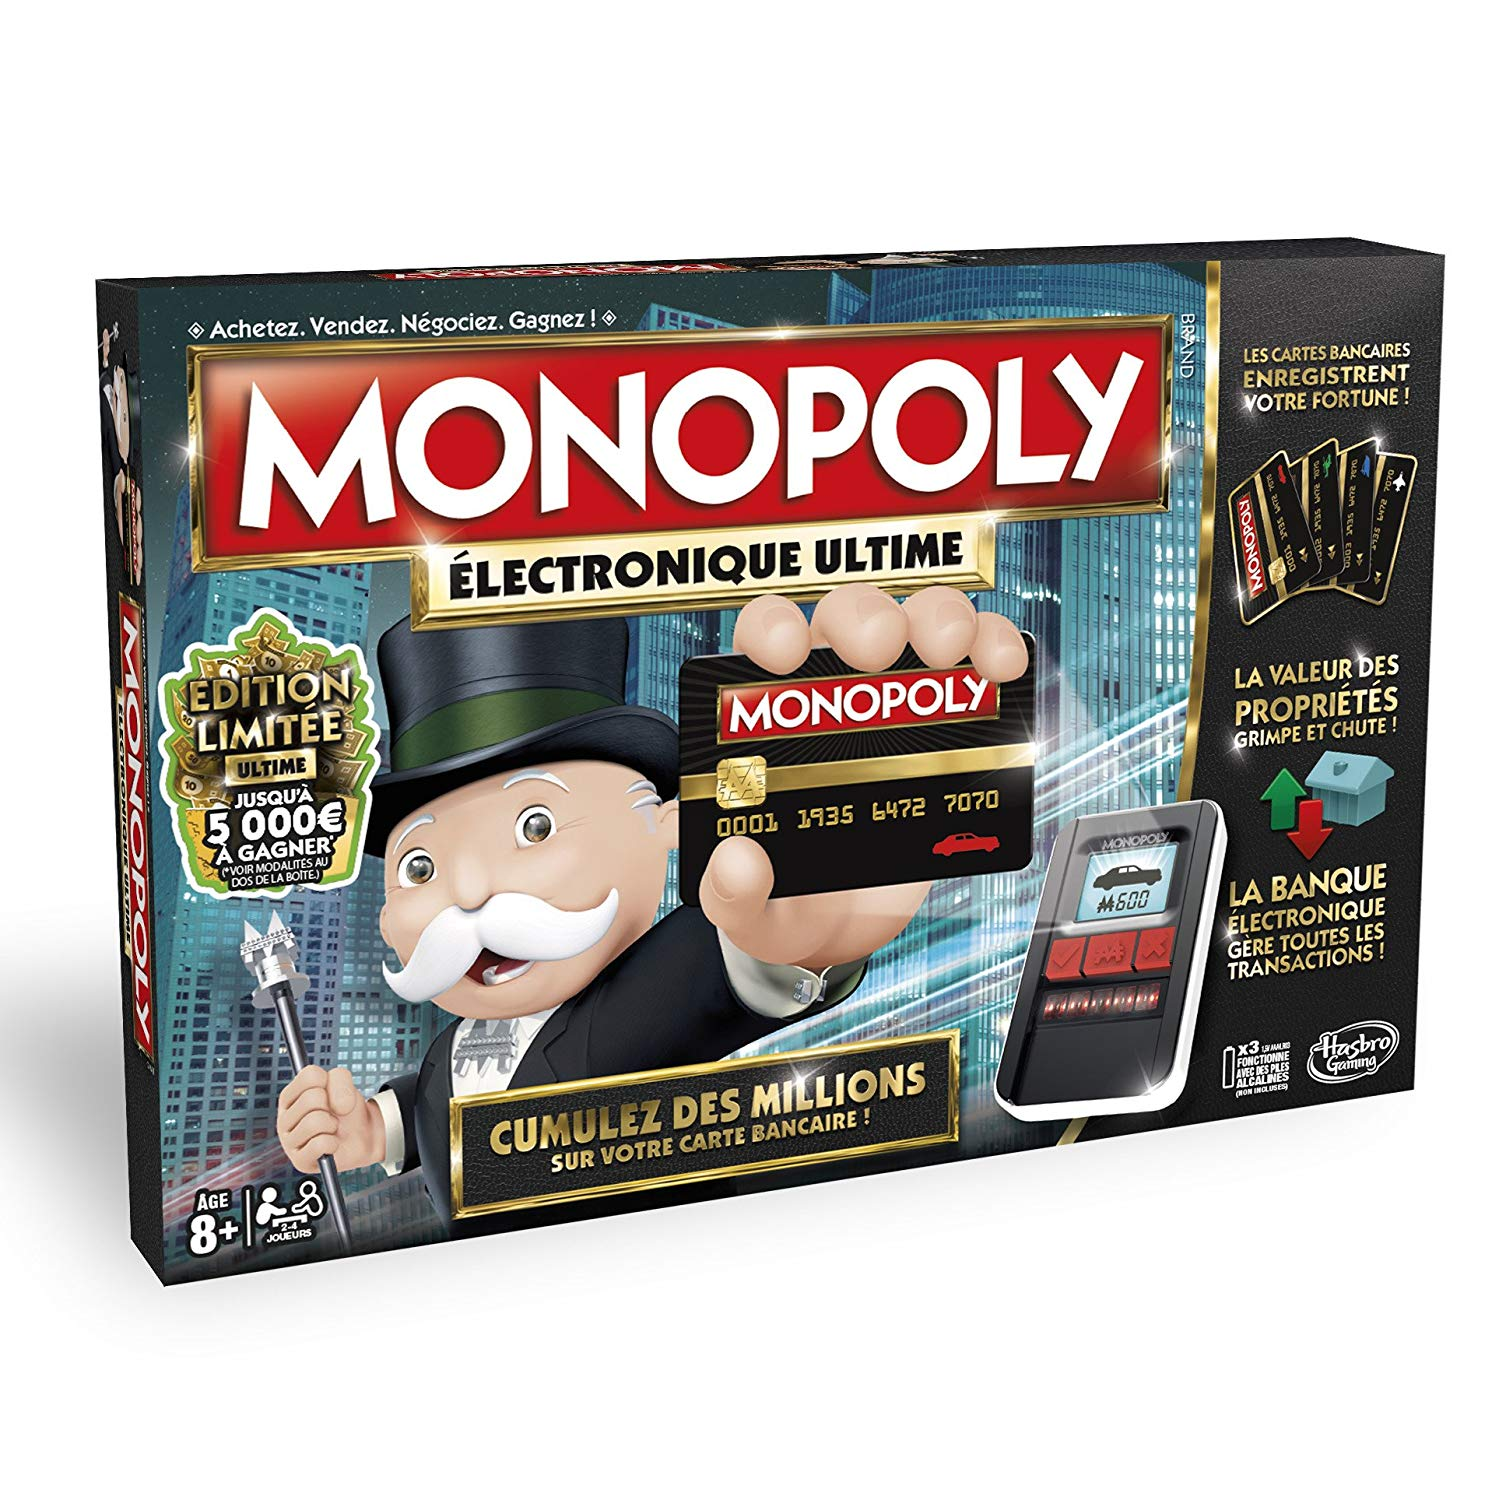 Hasbro - Monopoly Electronique Ultime